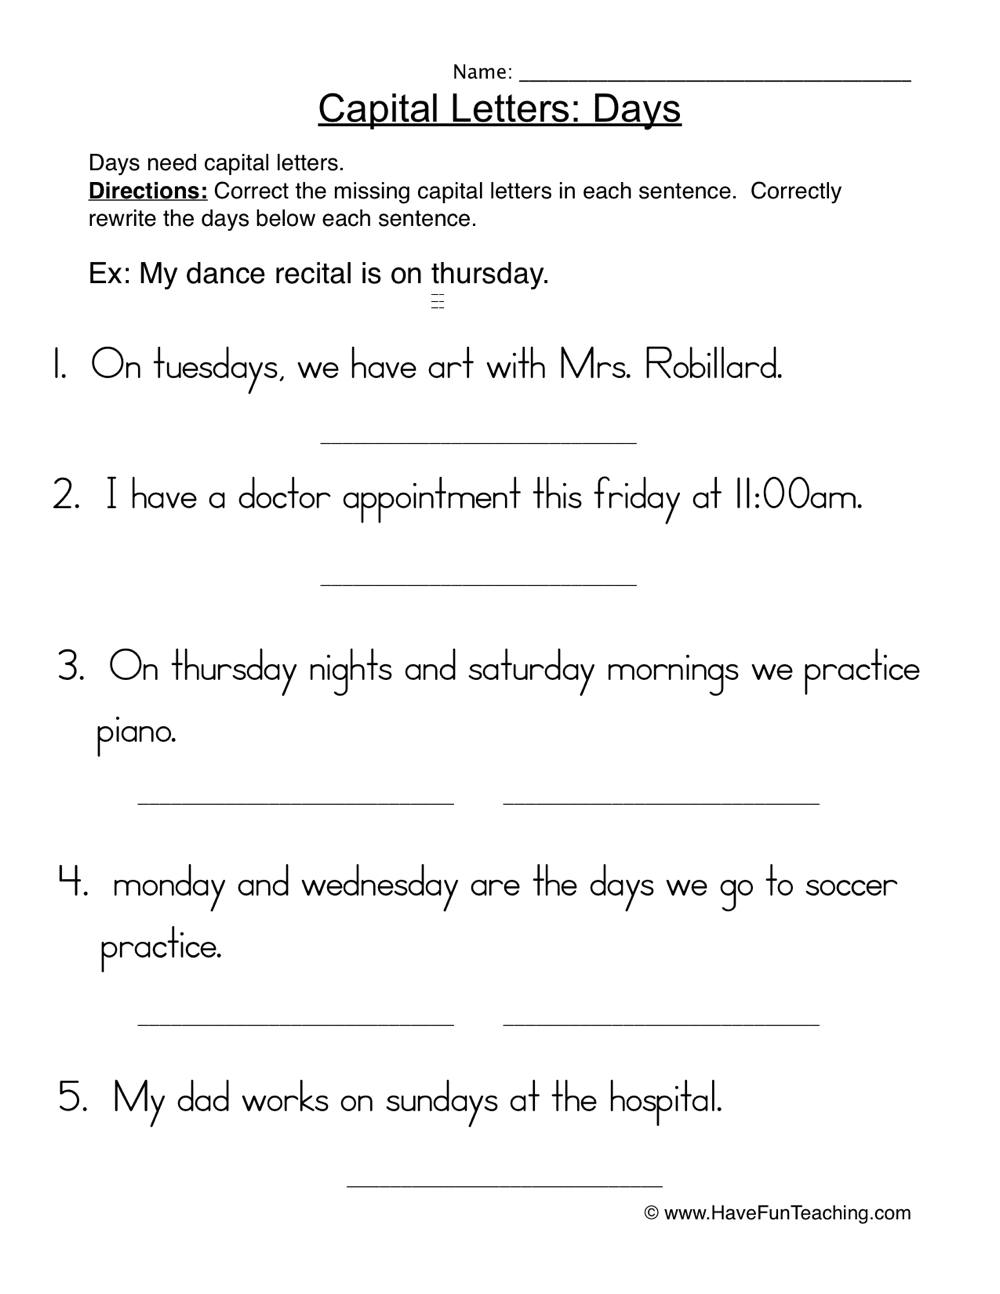 medium resolution of Capital Letters Days Sentences Worksheet • Have Fun Teaching